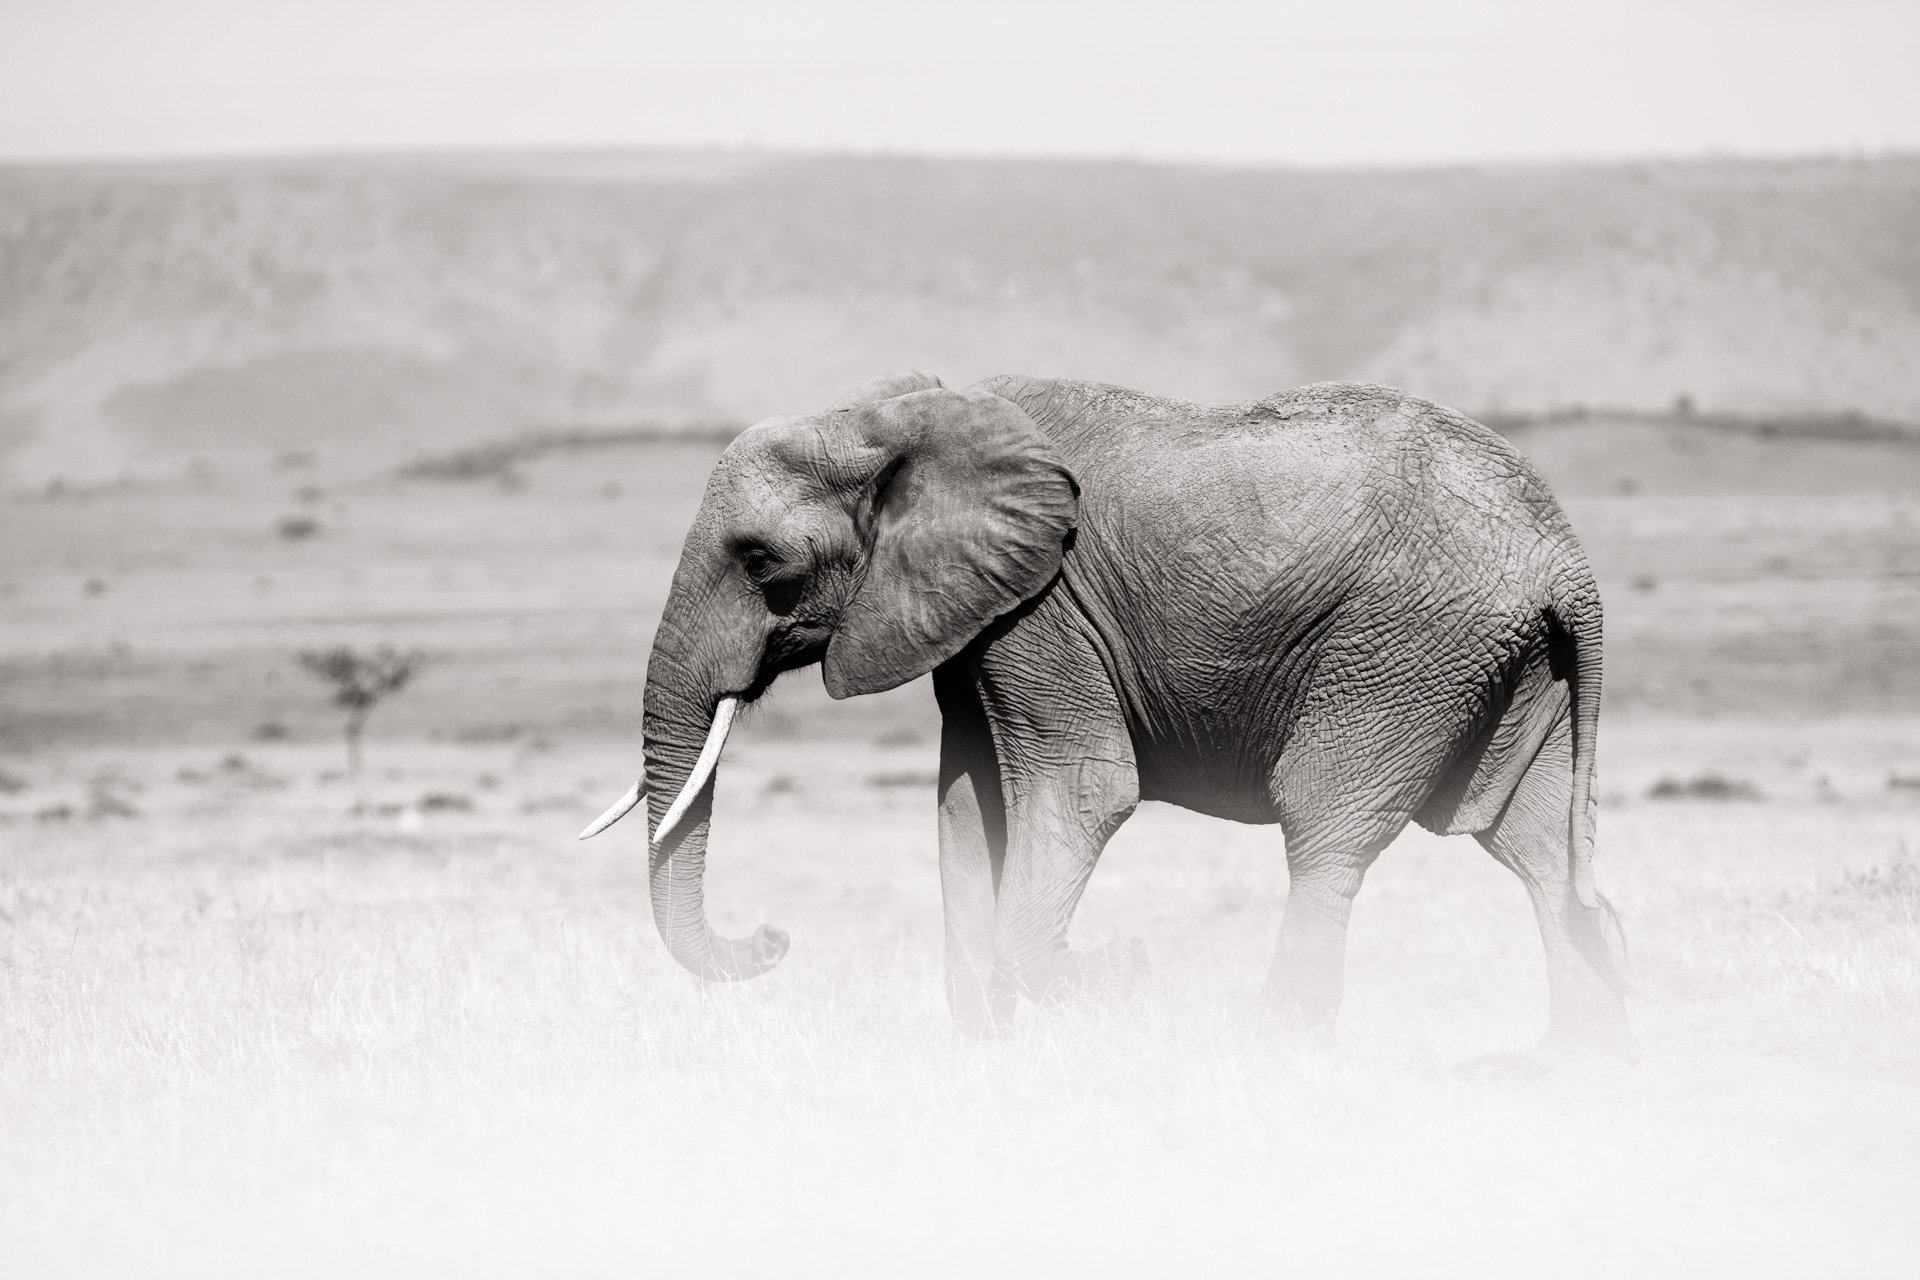 Elephant in white